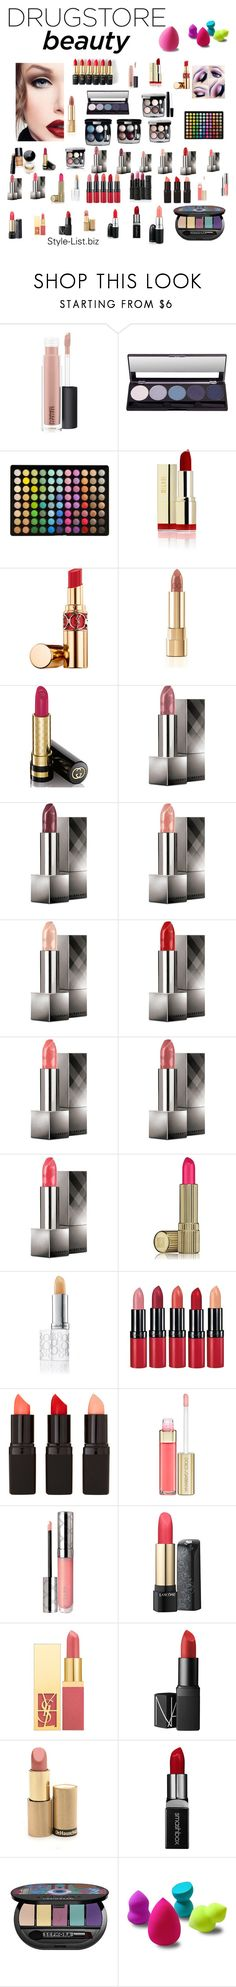 """Drugstore Beauty"" by dalexa-terra ❤ liked on Polyvore featuring beauty, MAC Cosmetics, L'Oréal Paris, Chanel, BHCosmetics, Yves Saint Laurent, Dolce&Gabbana, Gucci, Burberry and Estée Lauder"